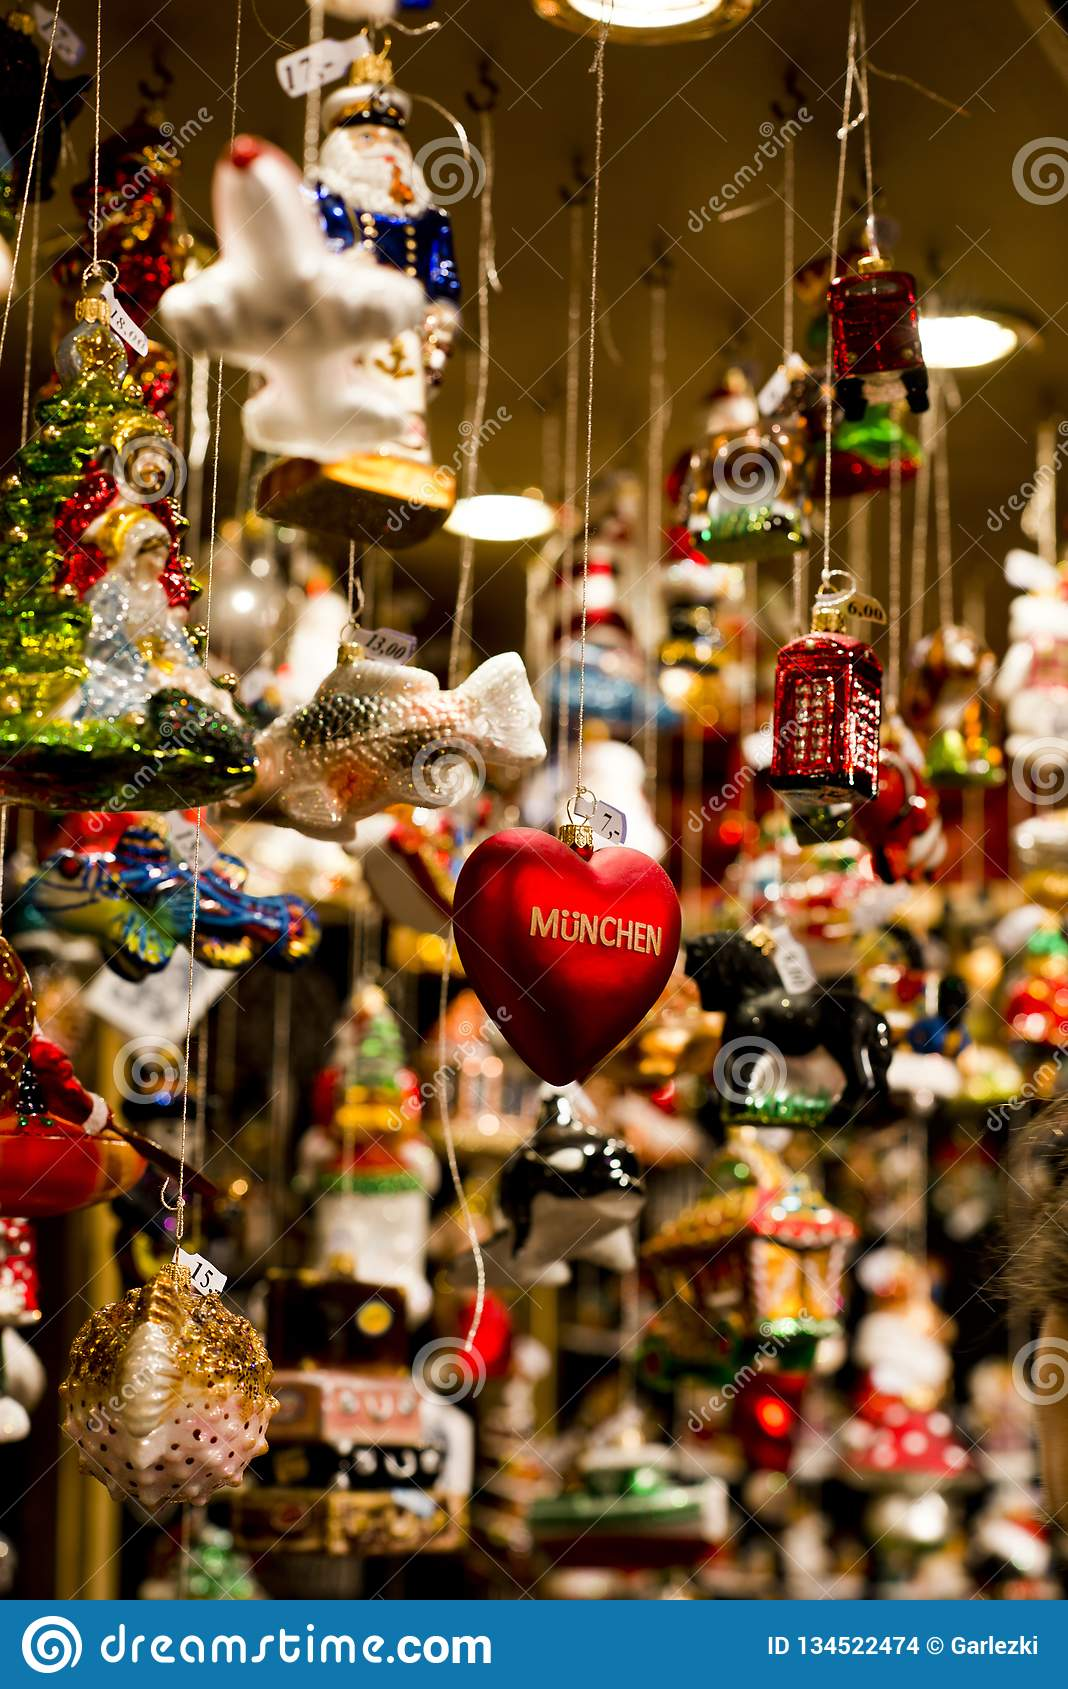 German Christmas Decorations Stock Photo Image Of Weihnachtsmarkt